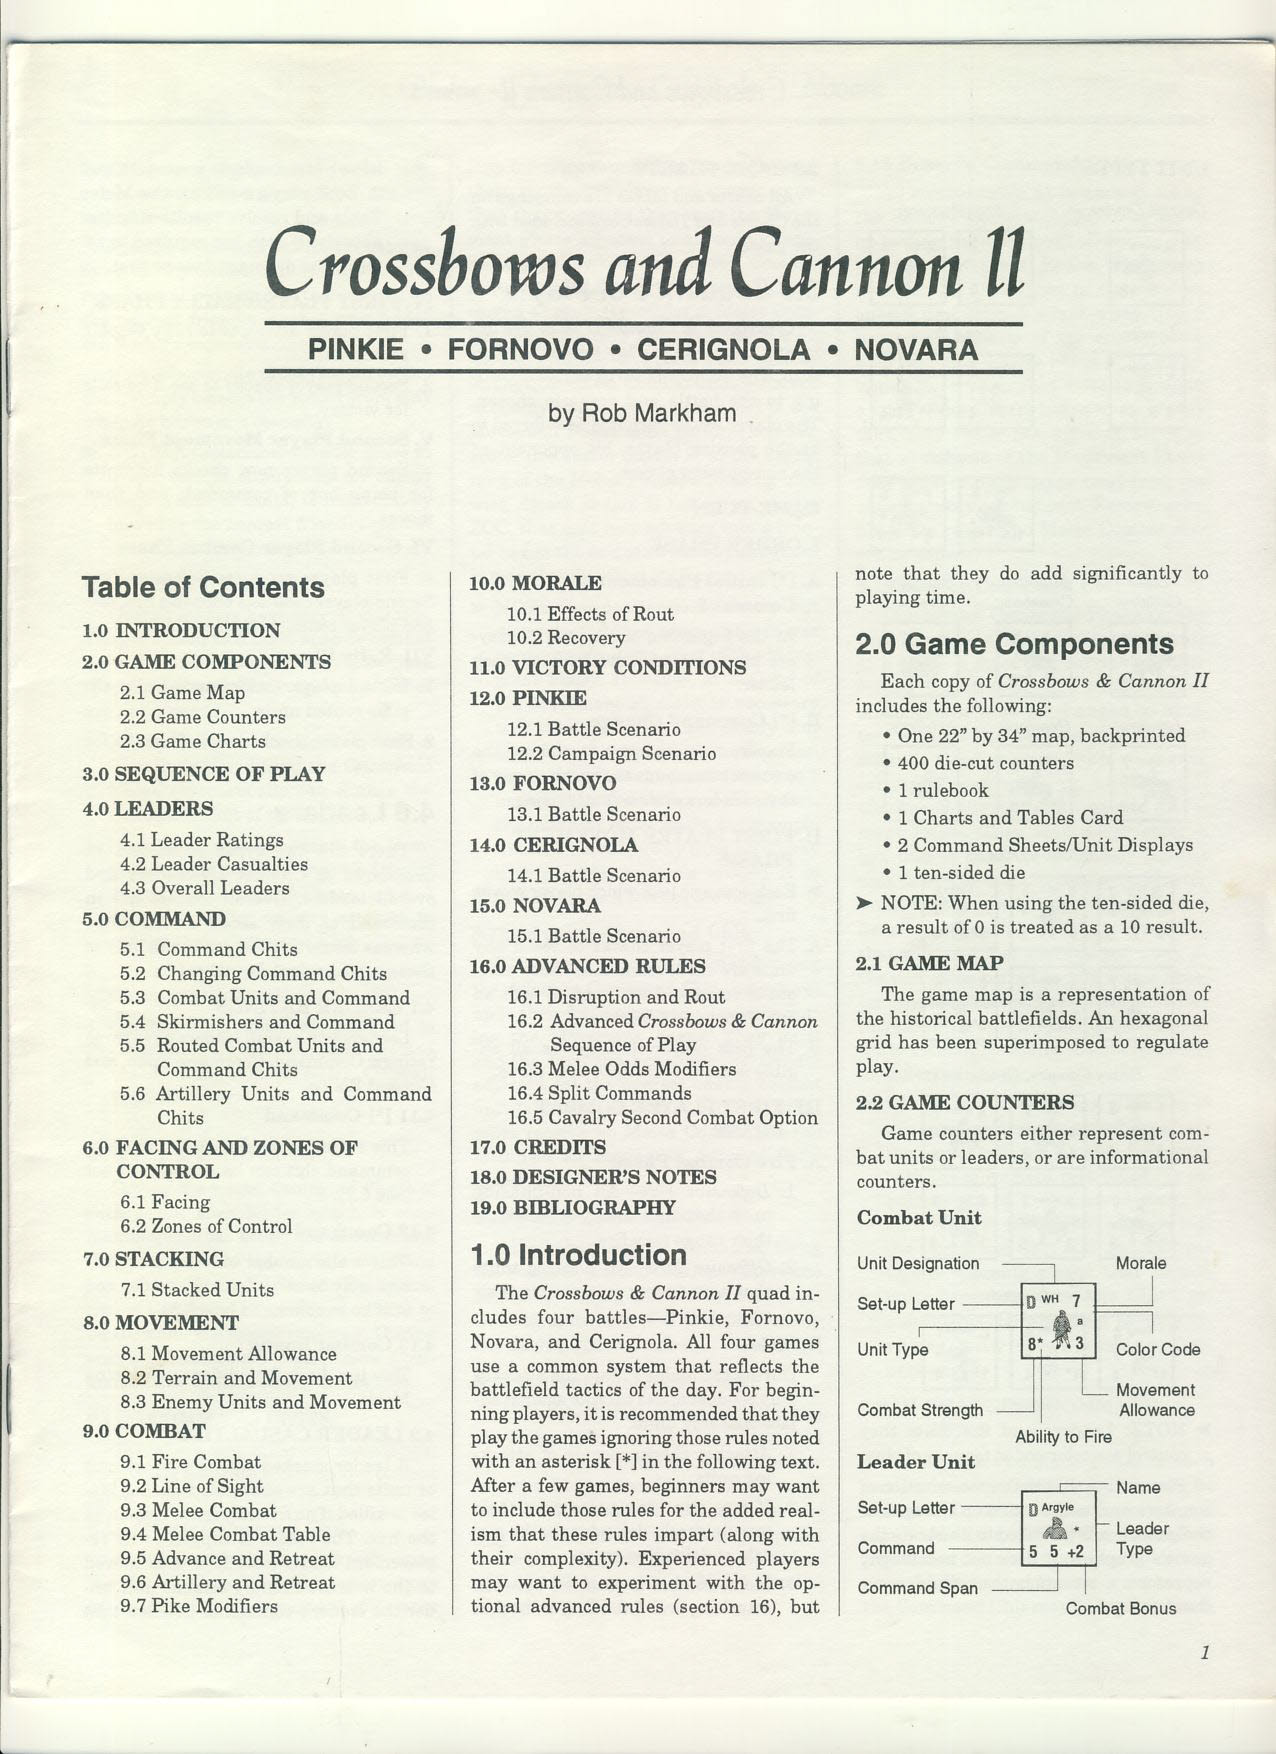 Crossbows & Cannon II Pinkie Fornovo Cerignola Novara Game Rules 12 pages ref1000141 Ideal for additional / replacement in exisiting board game. RULES ONLY no game parts or boards